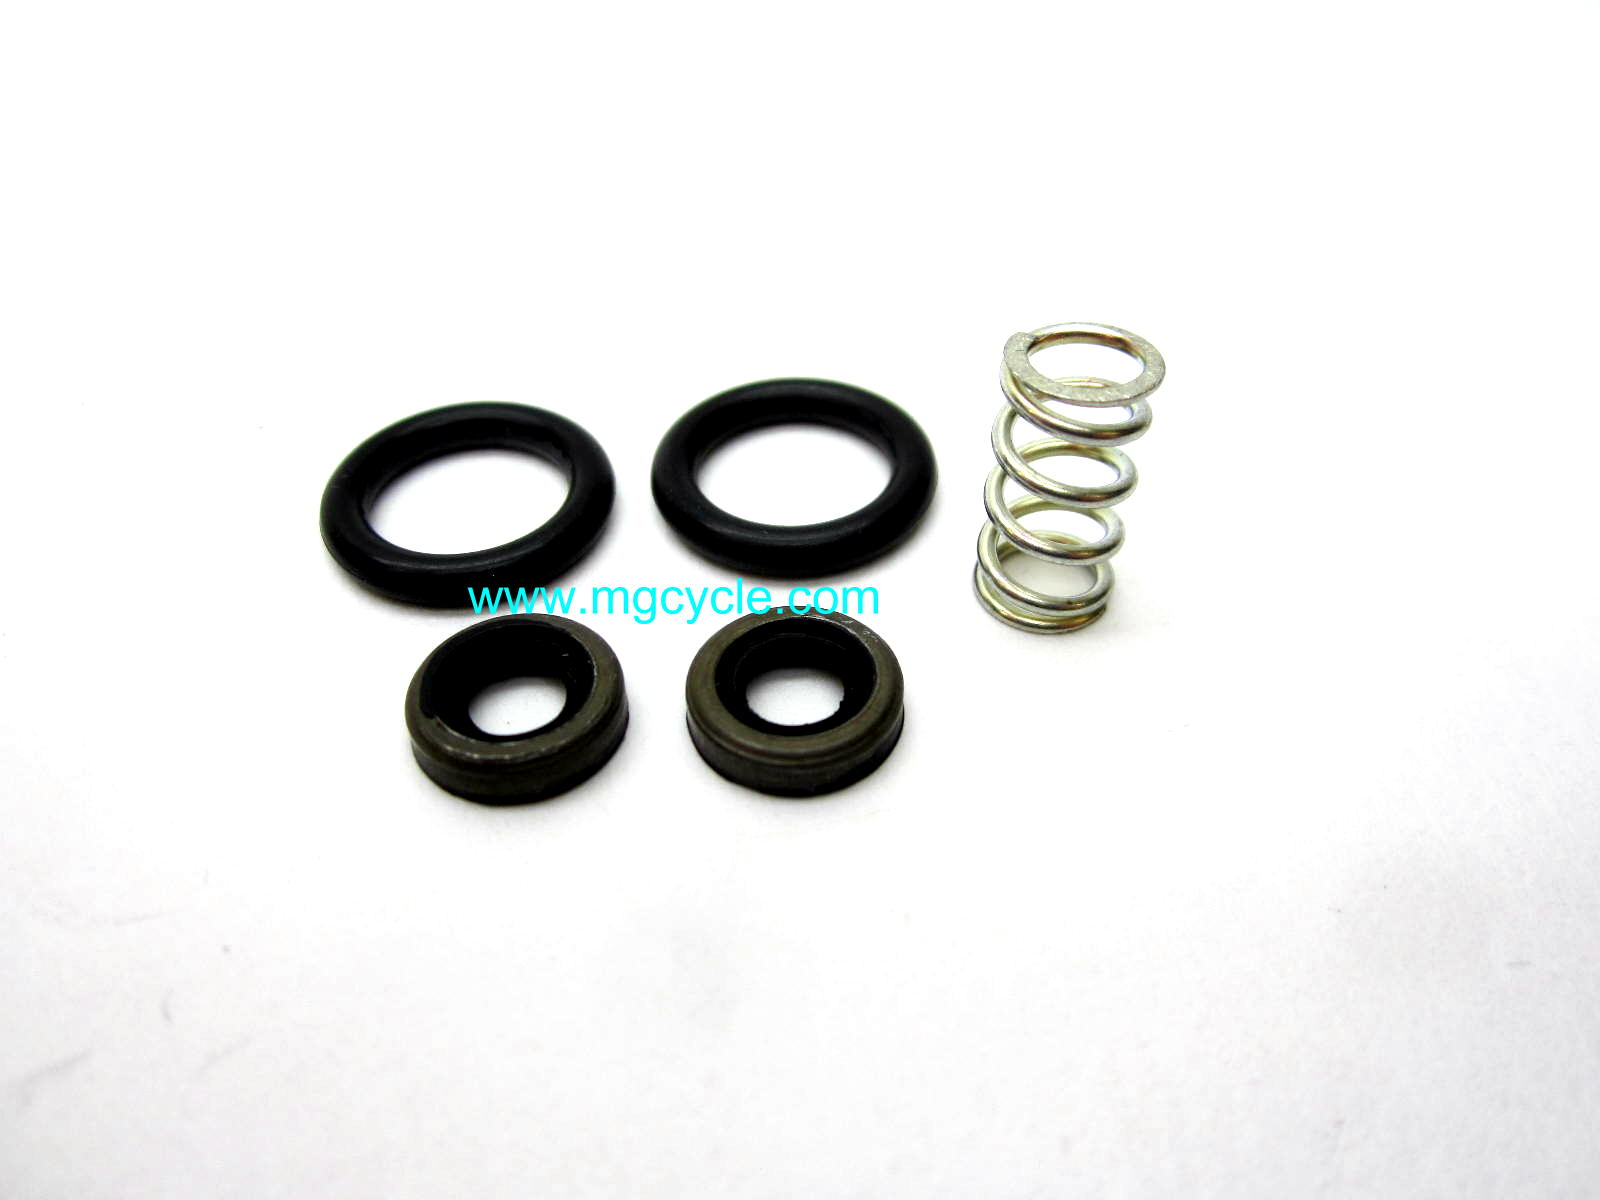 Replacement seal and oring kit for hydraulic clutch slave cylind